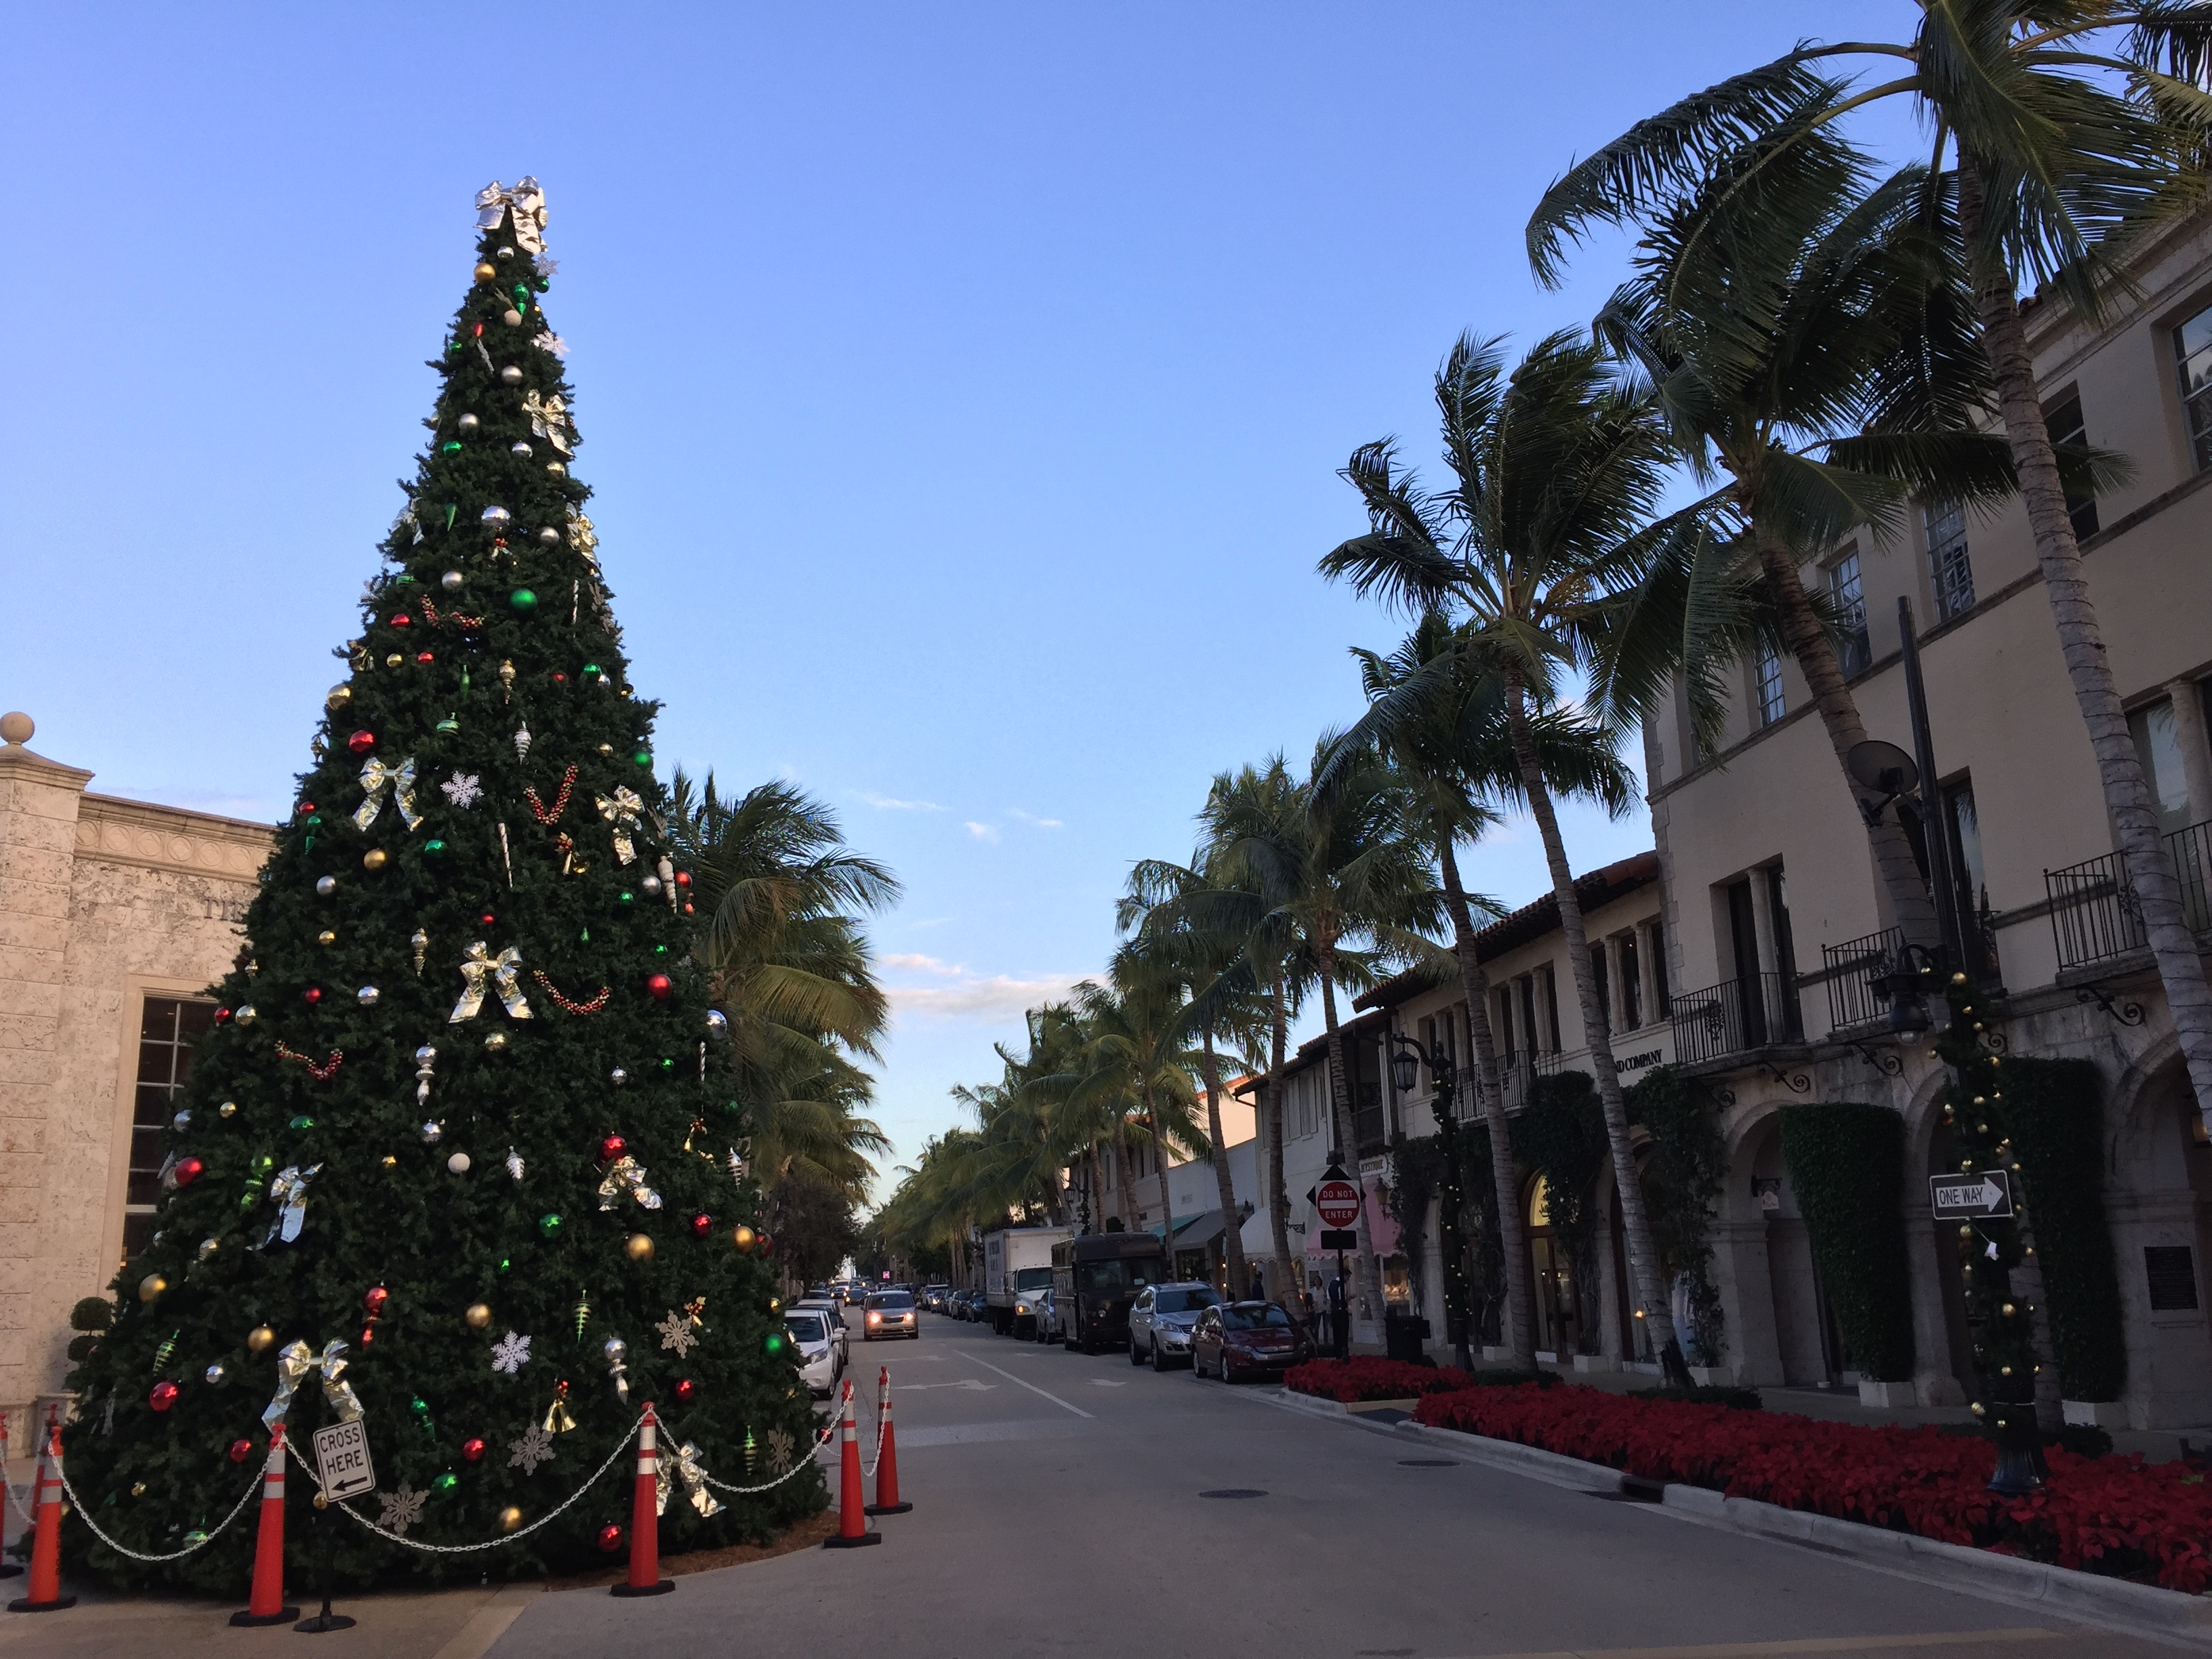 Fileworth Avenue In Palm Beach Florida With Christmas Tree  Jpg